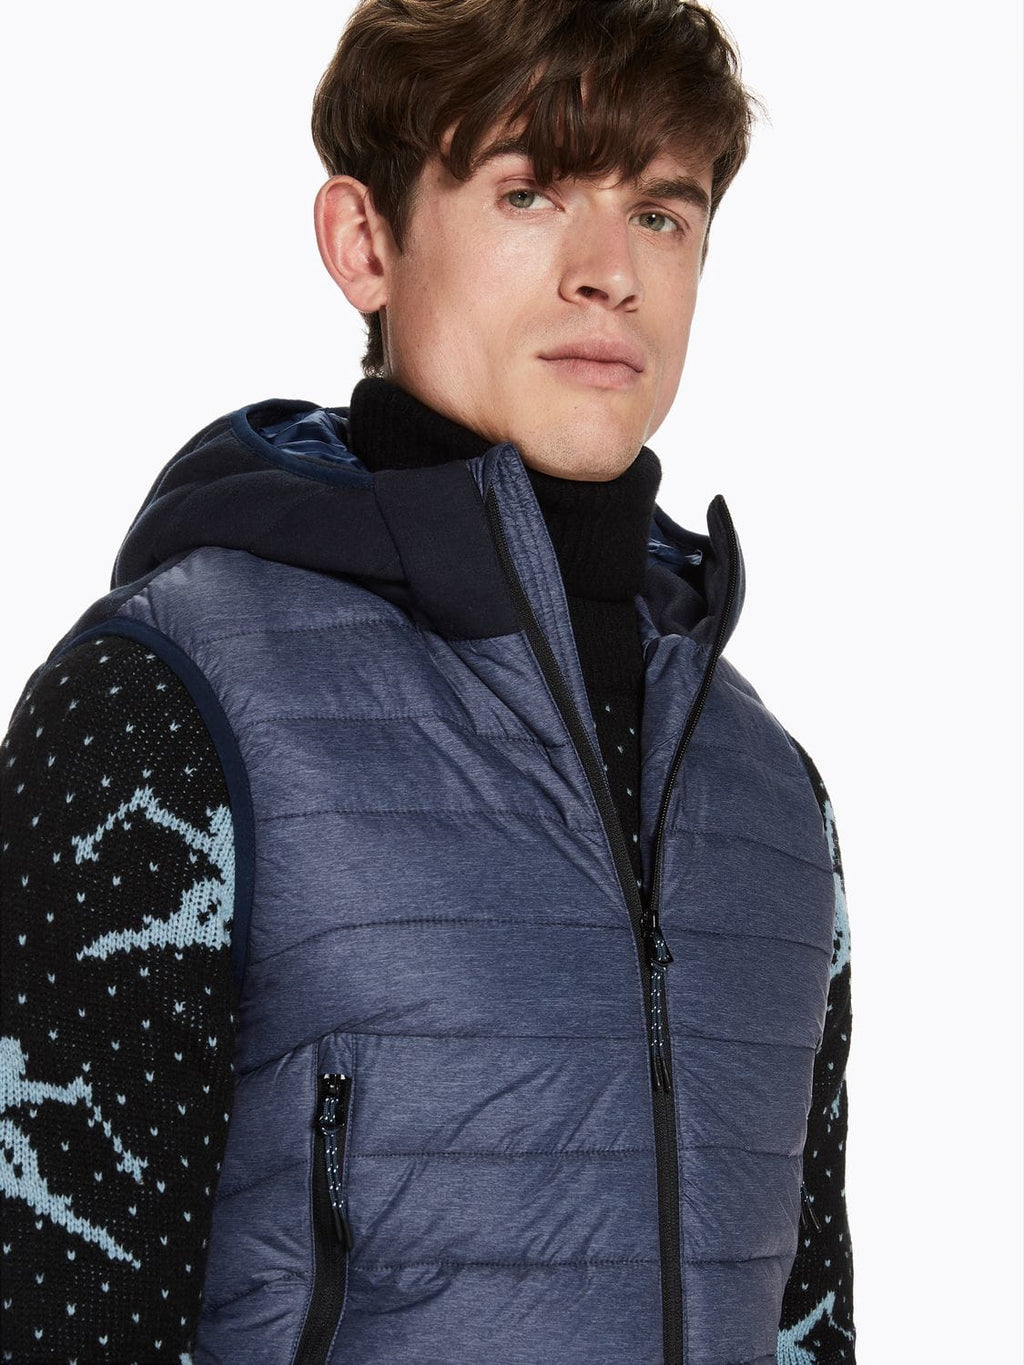 Scotch & Soda Denim Blue Hooded Bodywarmer